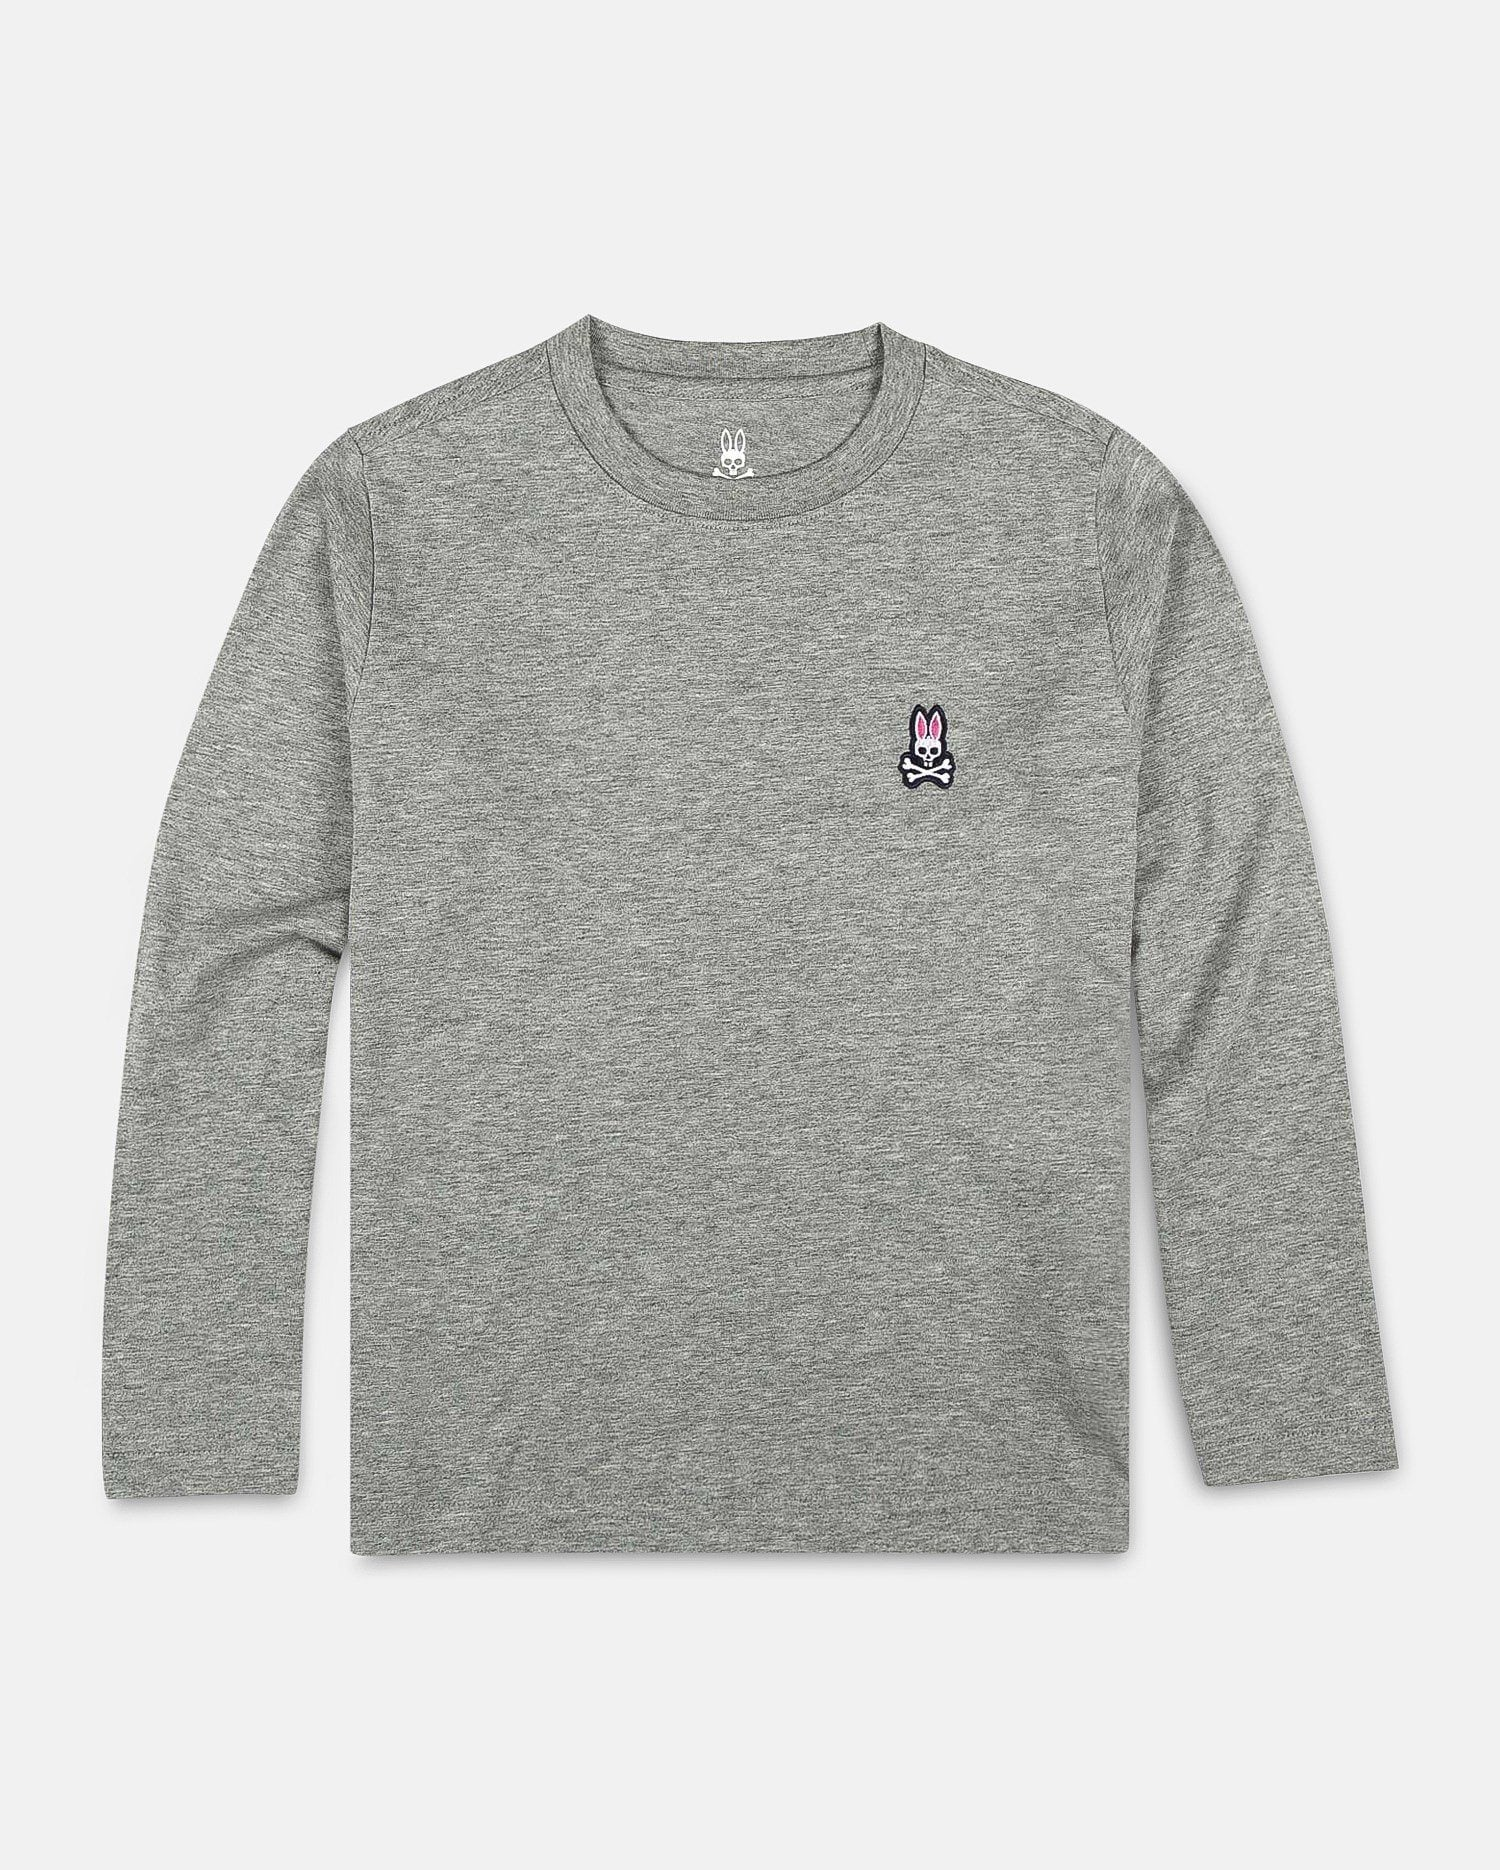 BOYS CREW NECK LONG SLEEVE TEE - B0T422S7PC - HEATHER GREY (HGY)